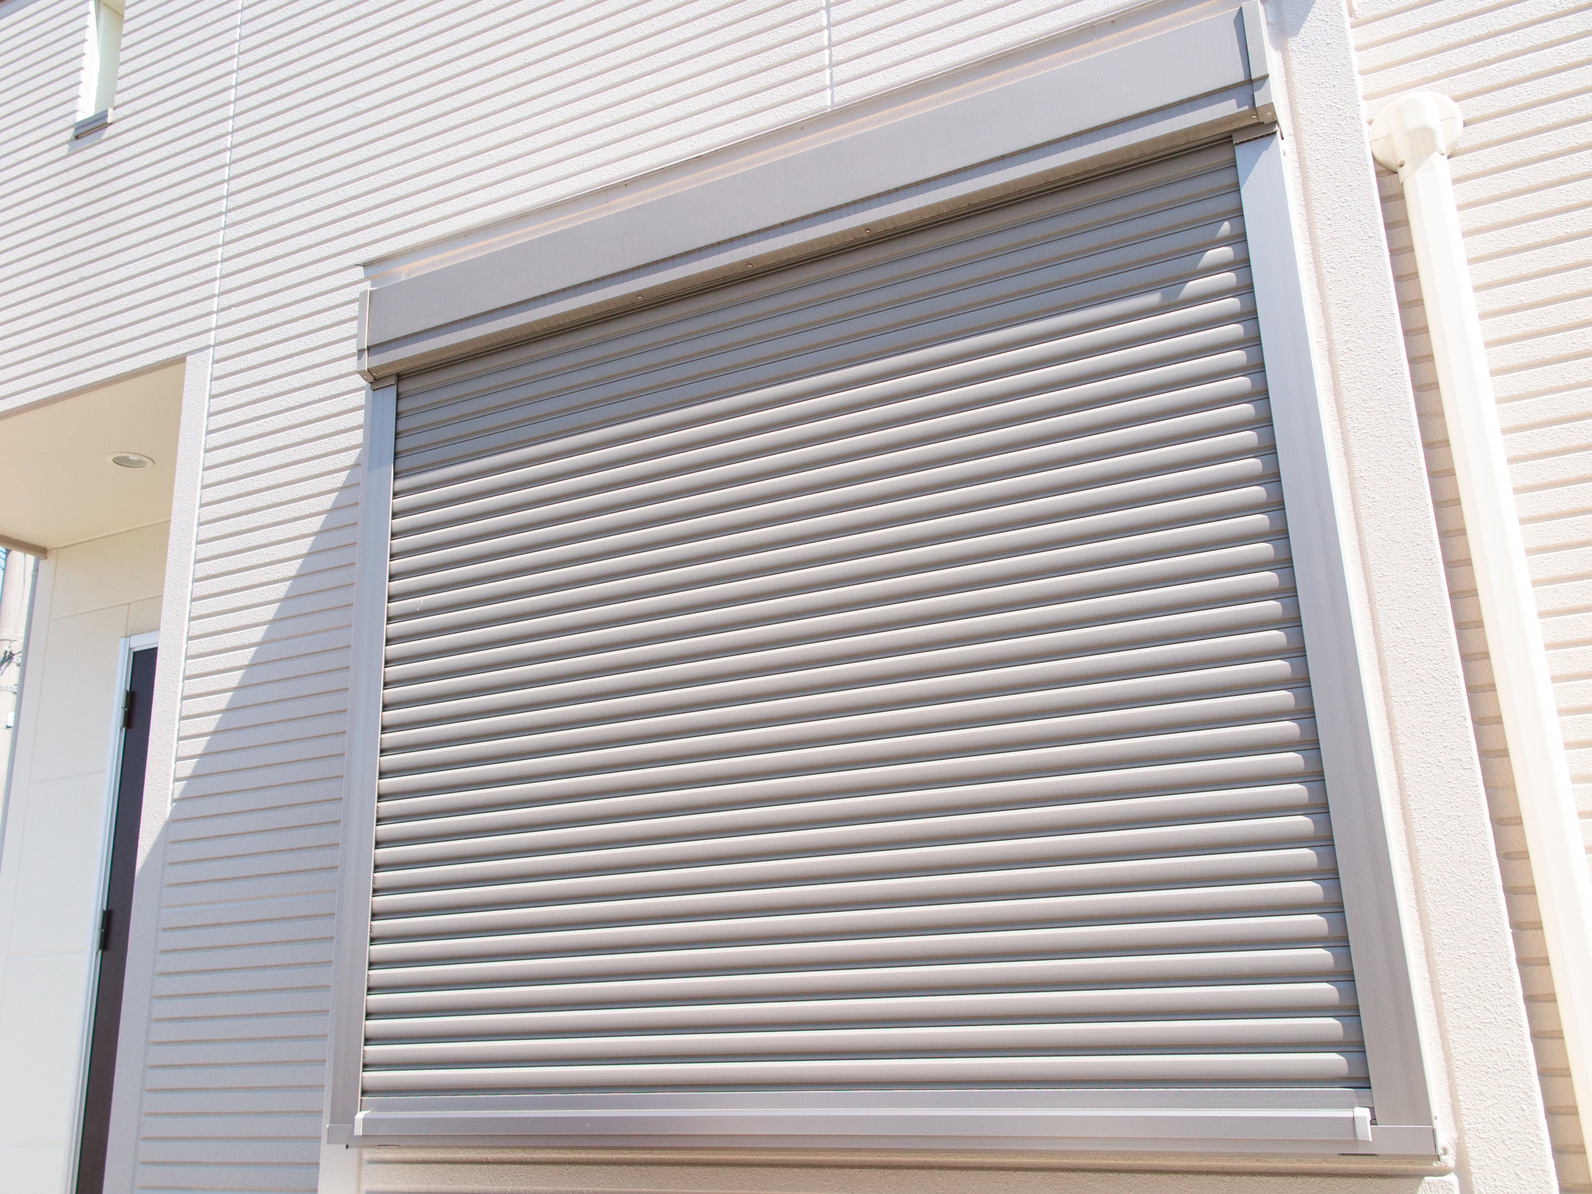 Will Roller Shutters Give Absolute Security?